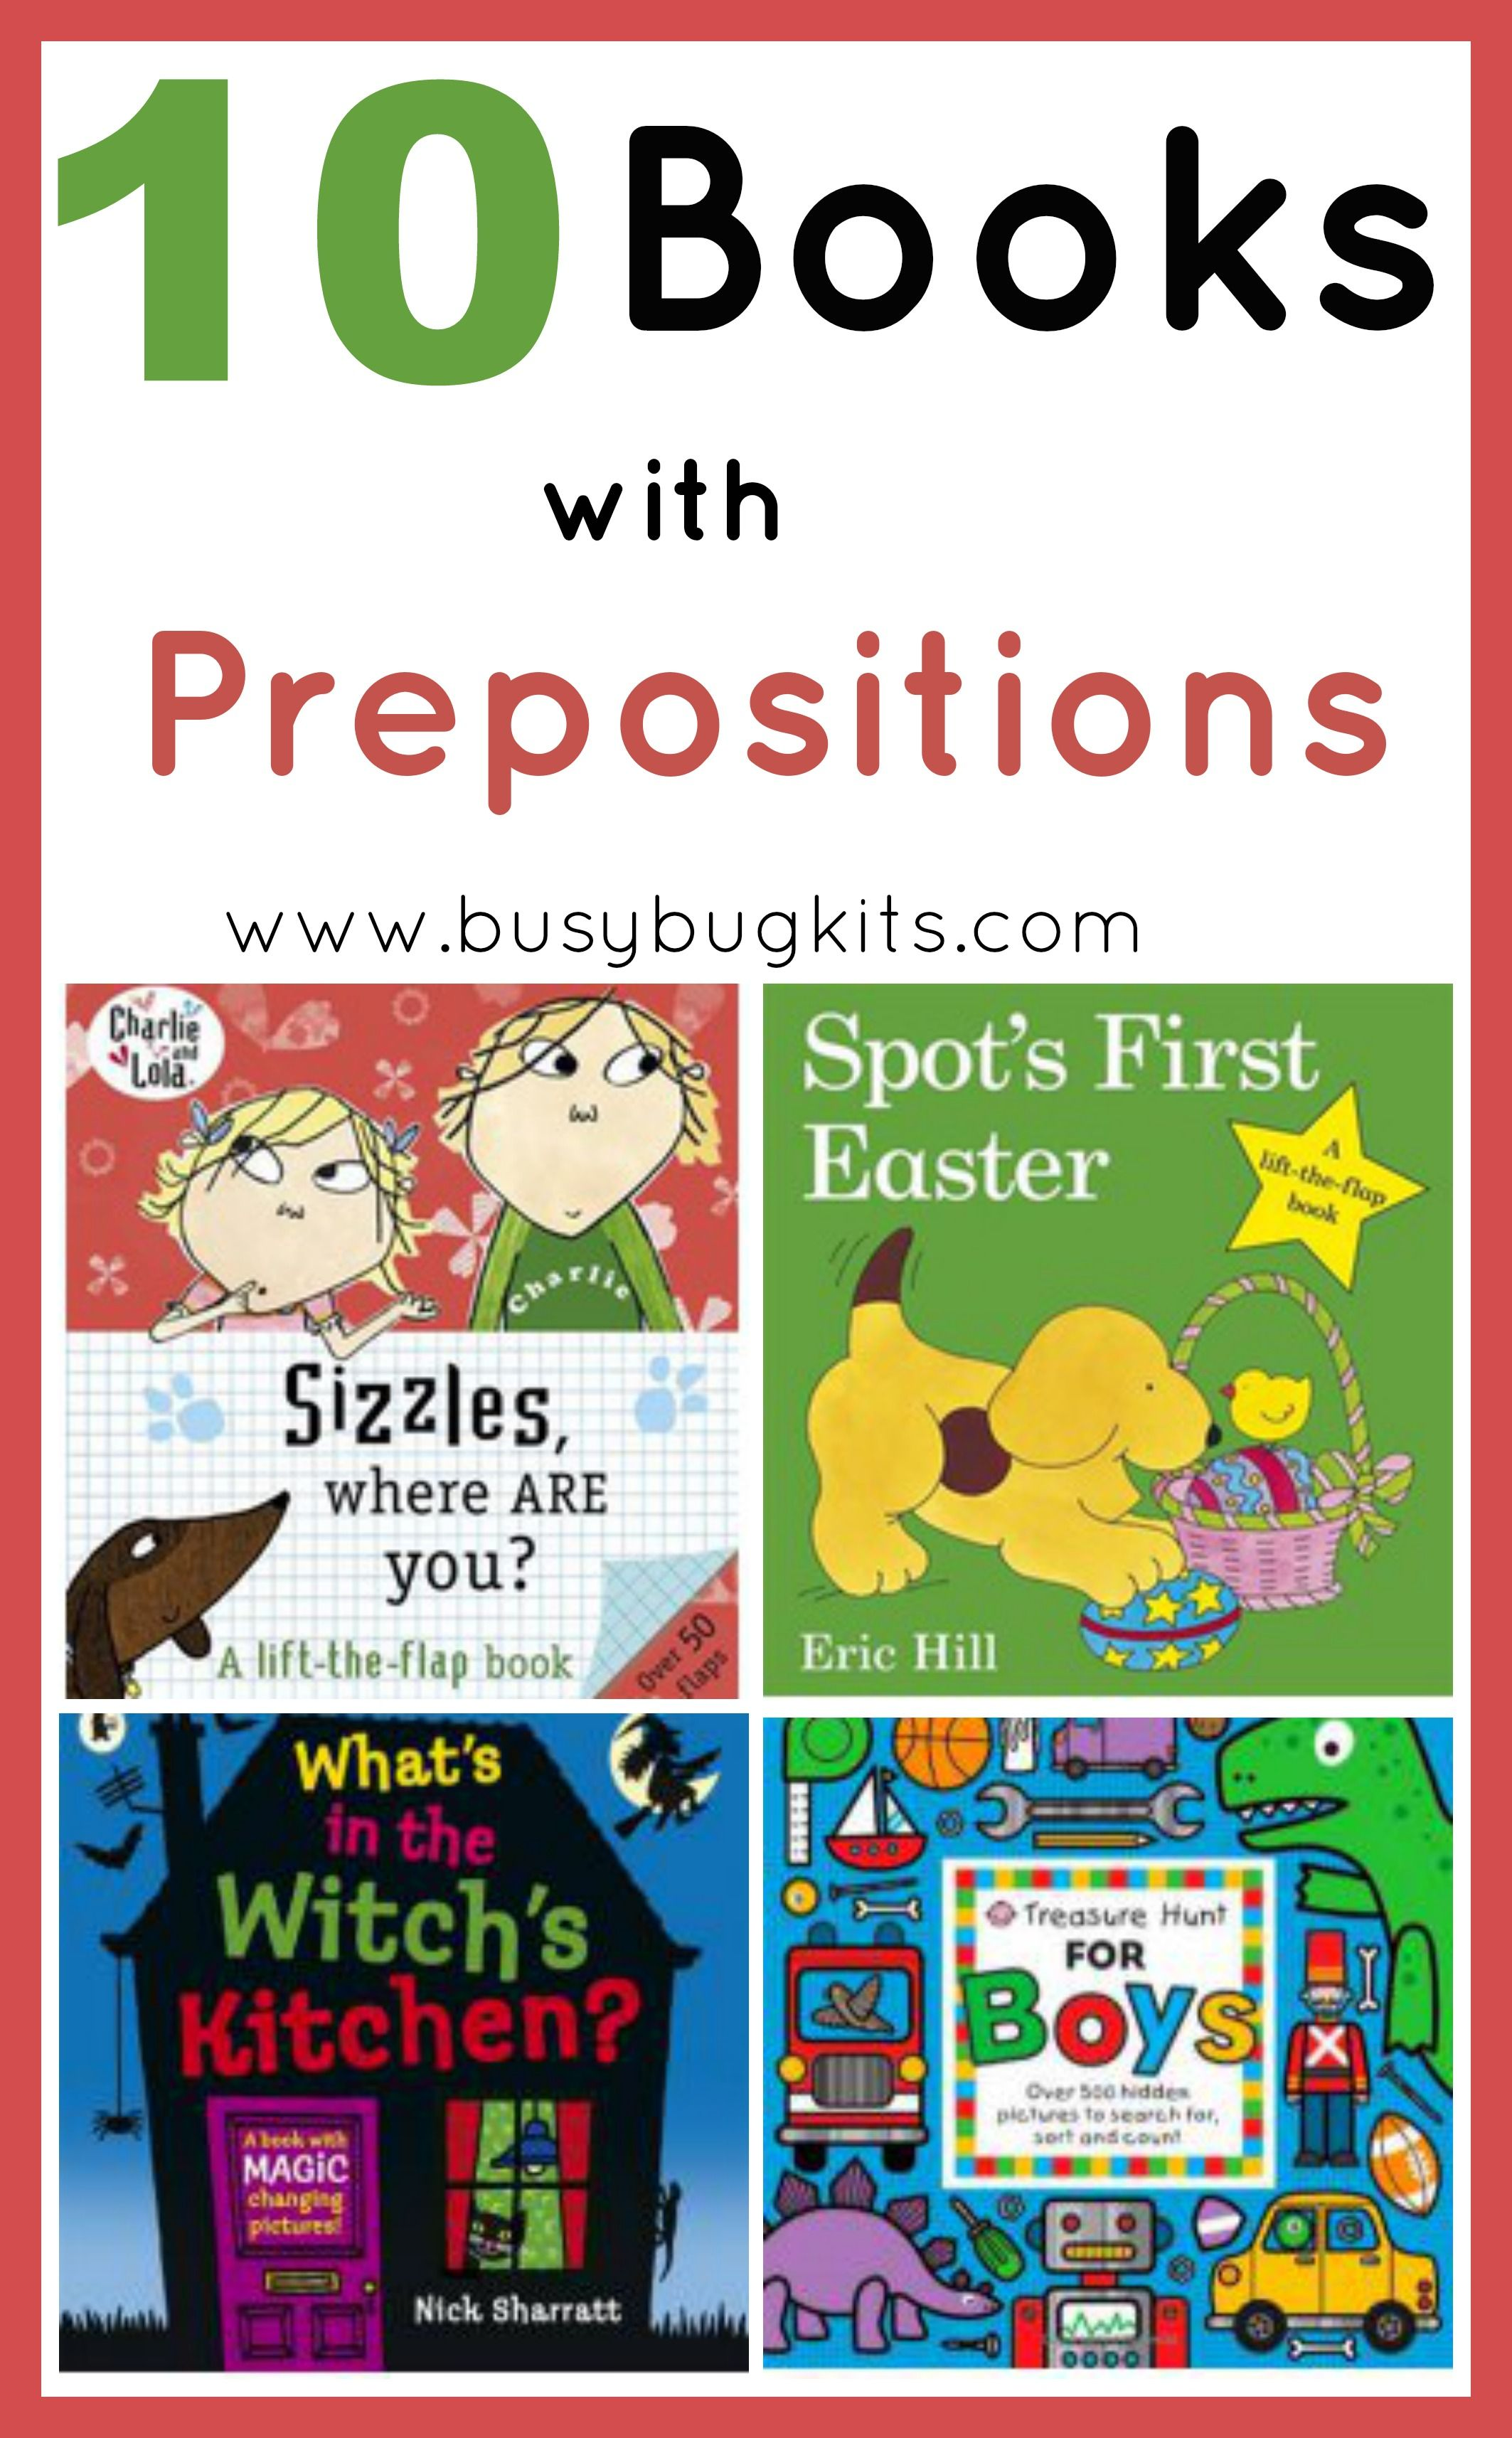 Busybug Kits 10 Books With Prepositions Pinned By Sos Inc Resources So Siu Ki Inc Resources